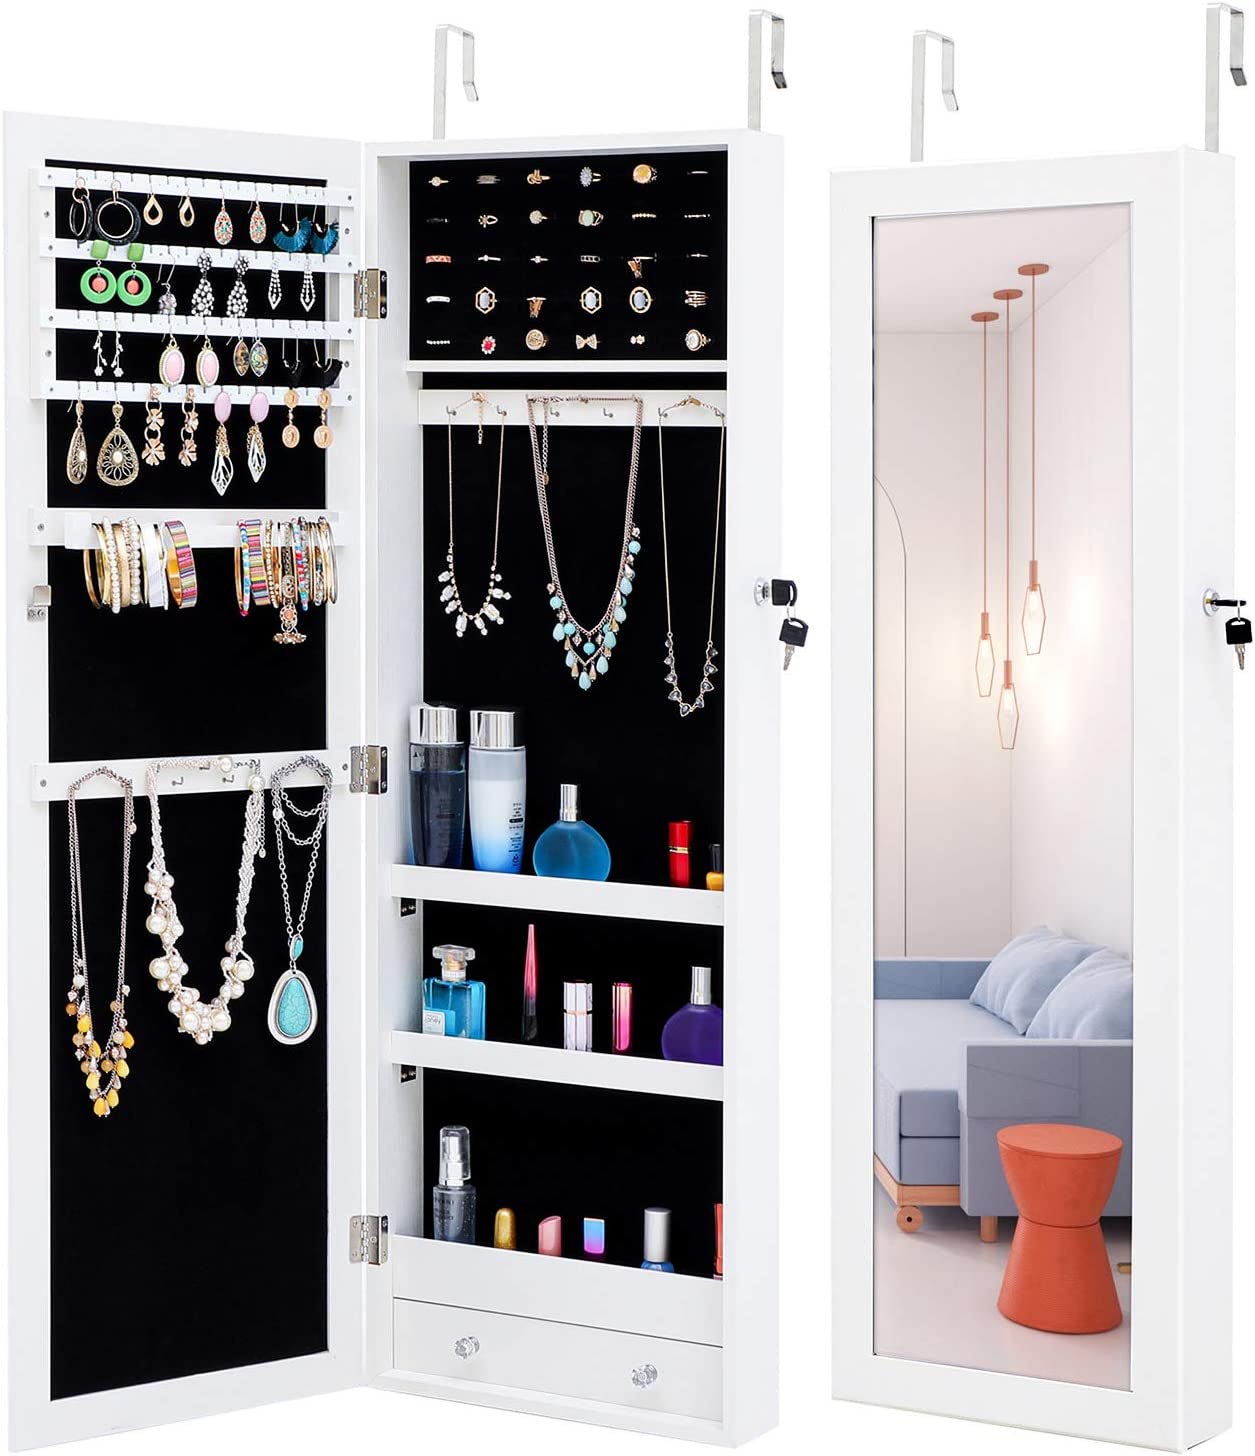 MIYACA Jewelry Mirror Armoire Organizer Fashion Simple, Lockable Jewelry Cabinet Wall/Door Mounted, with Full Length Dressing Mirror and Larger Capacity, White-Simple